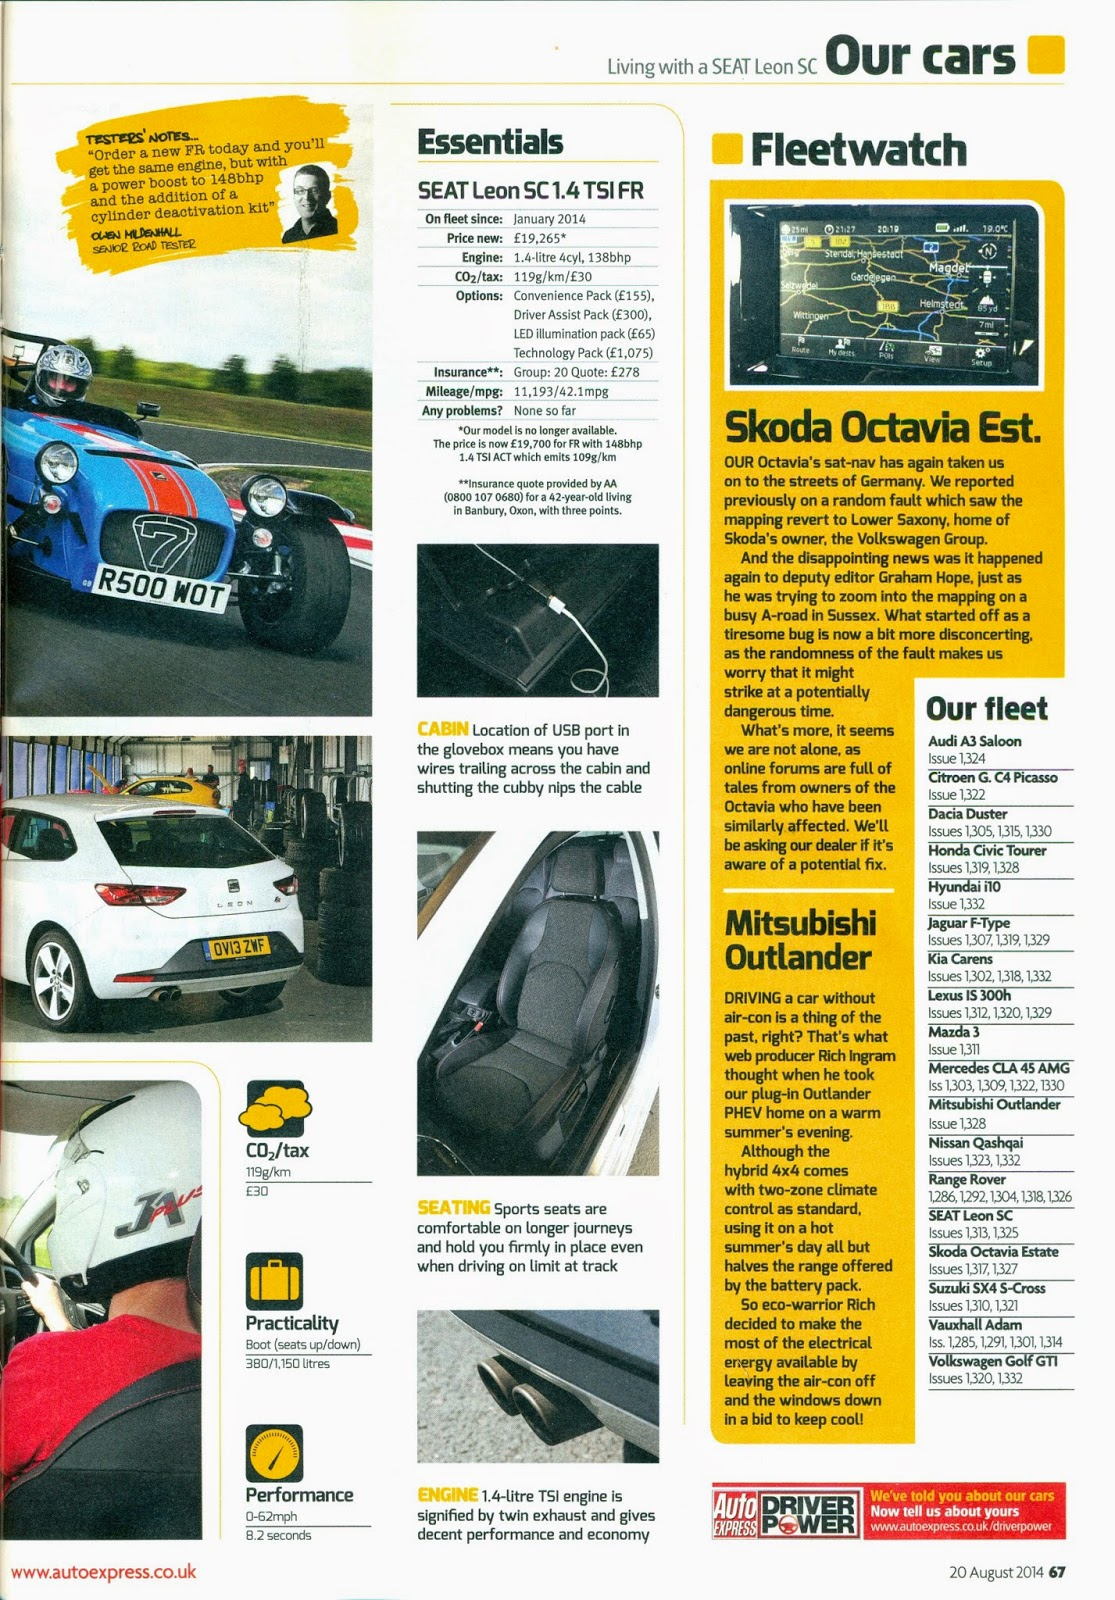 Seat Leon SC report in Auto Express magazine page 67 with my Caterham R500 pictured.